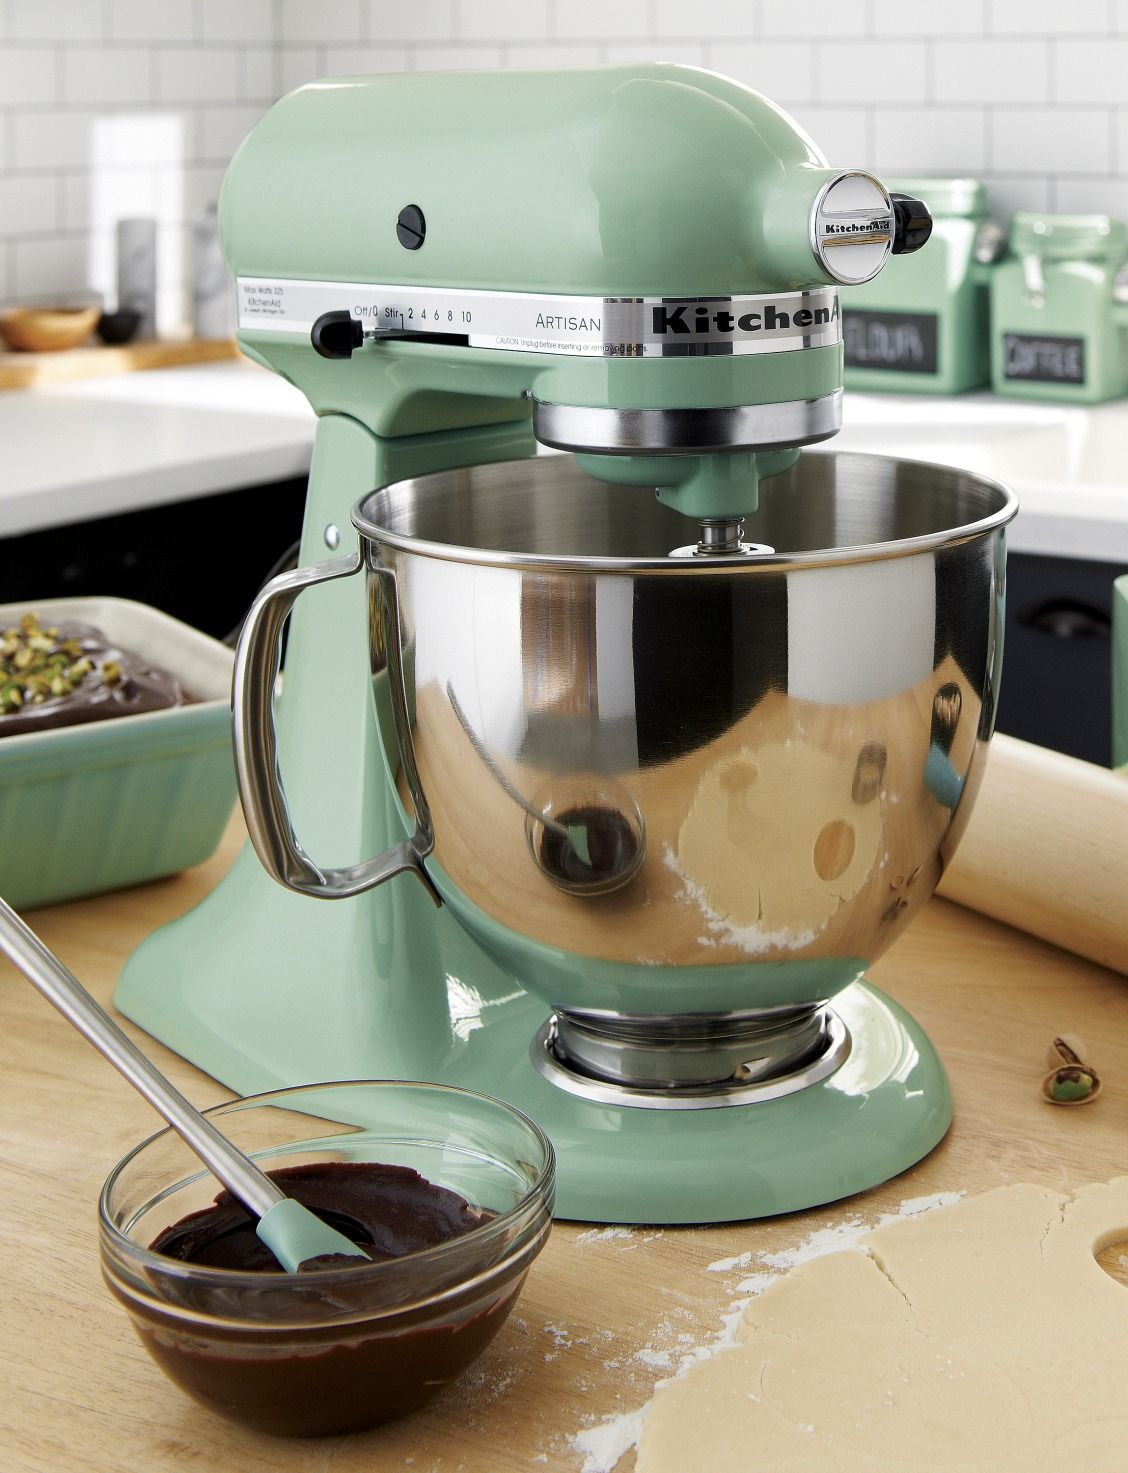 Kitchenaid Küchenmaschine Video Kitchenaid Artisan Pistachio Stand Mixer In 2019 Trends To Watch